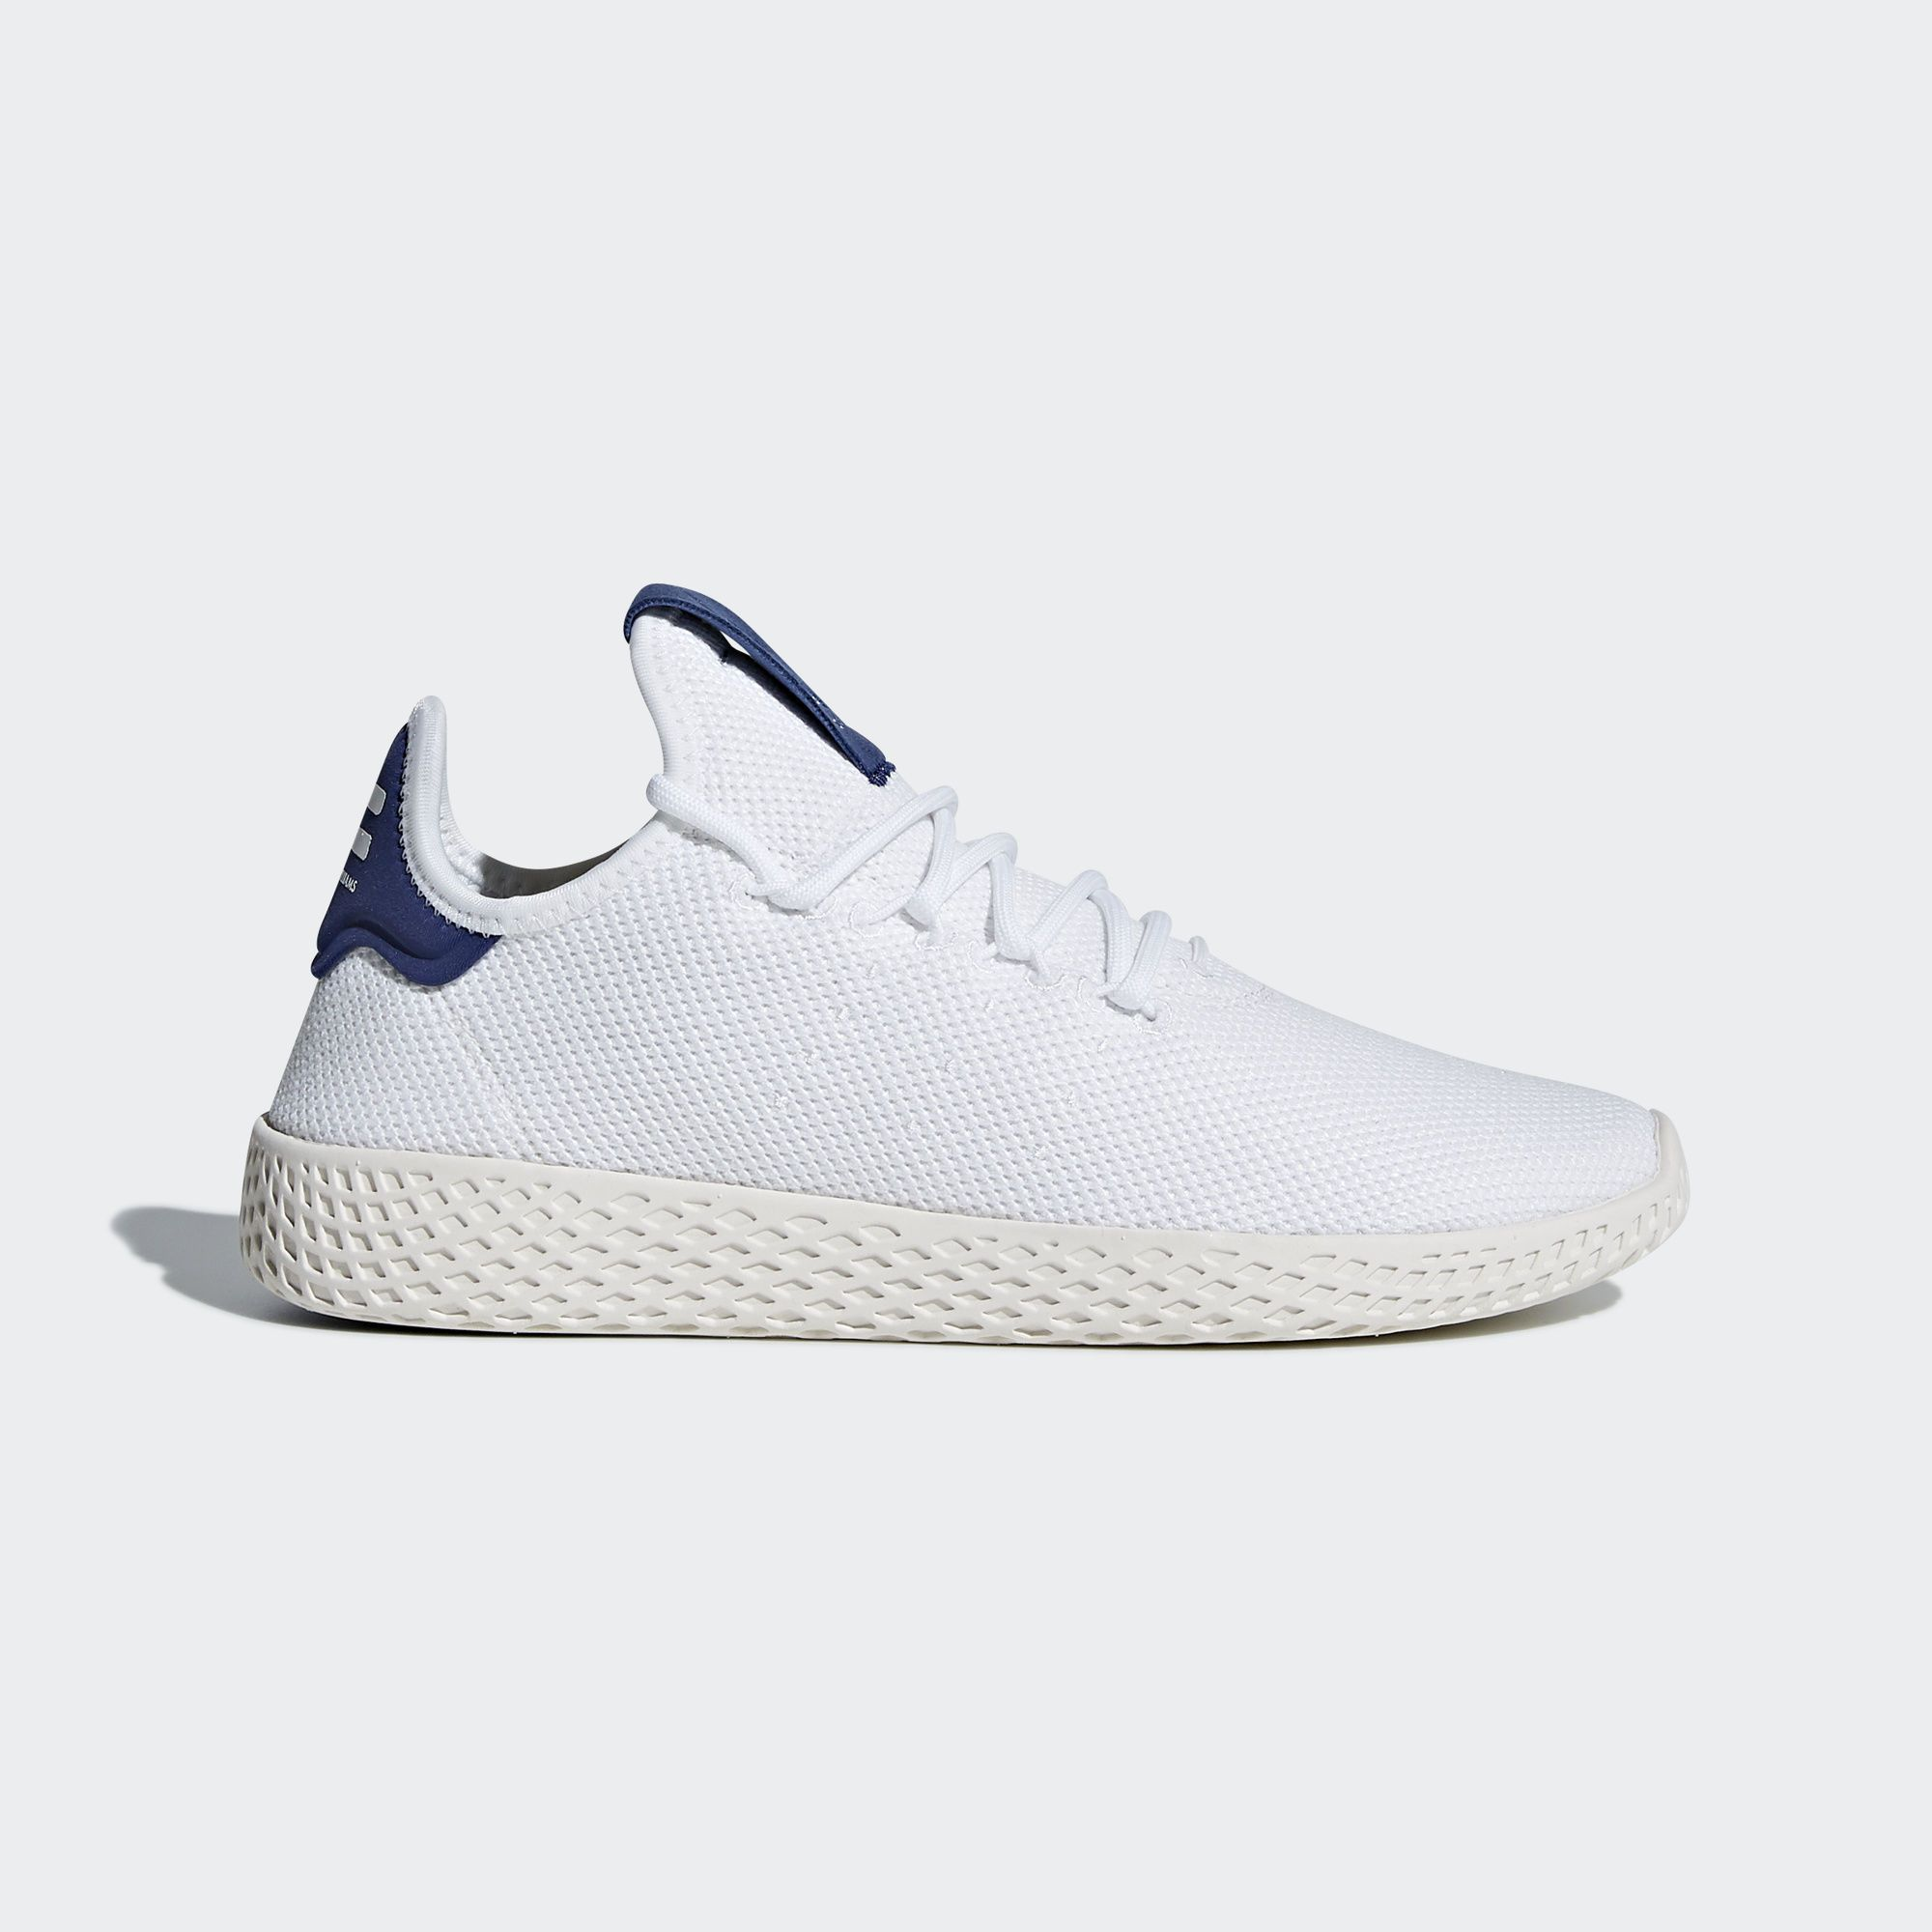 Shop the Pharrell Williams Tennis Hu Shoes White at adidas